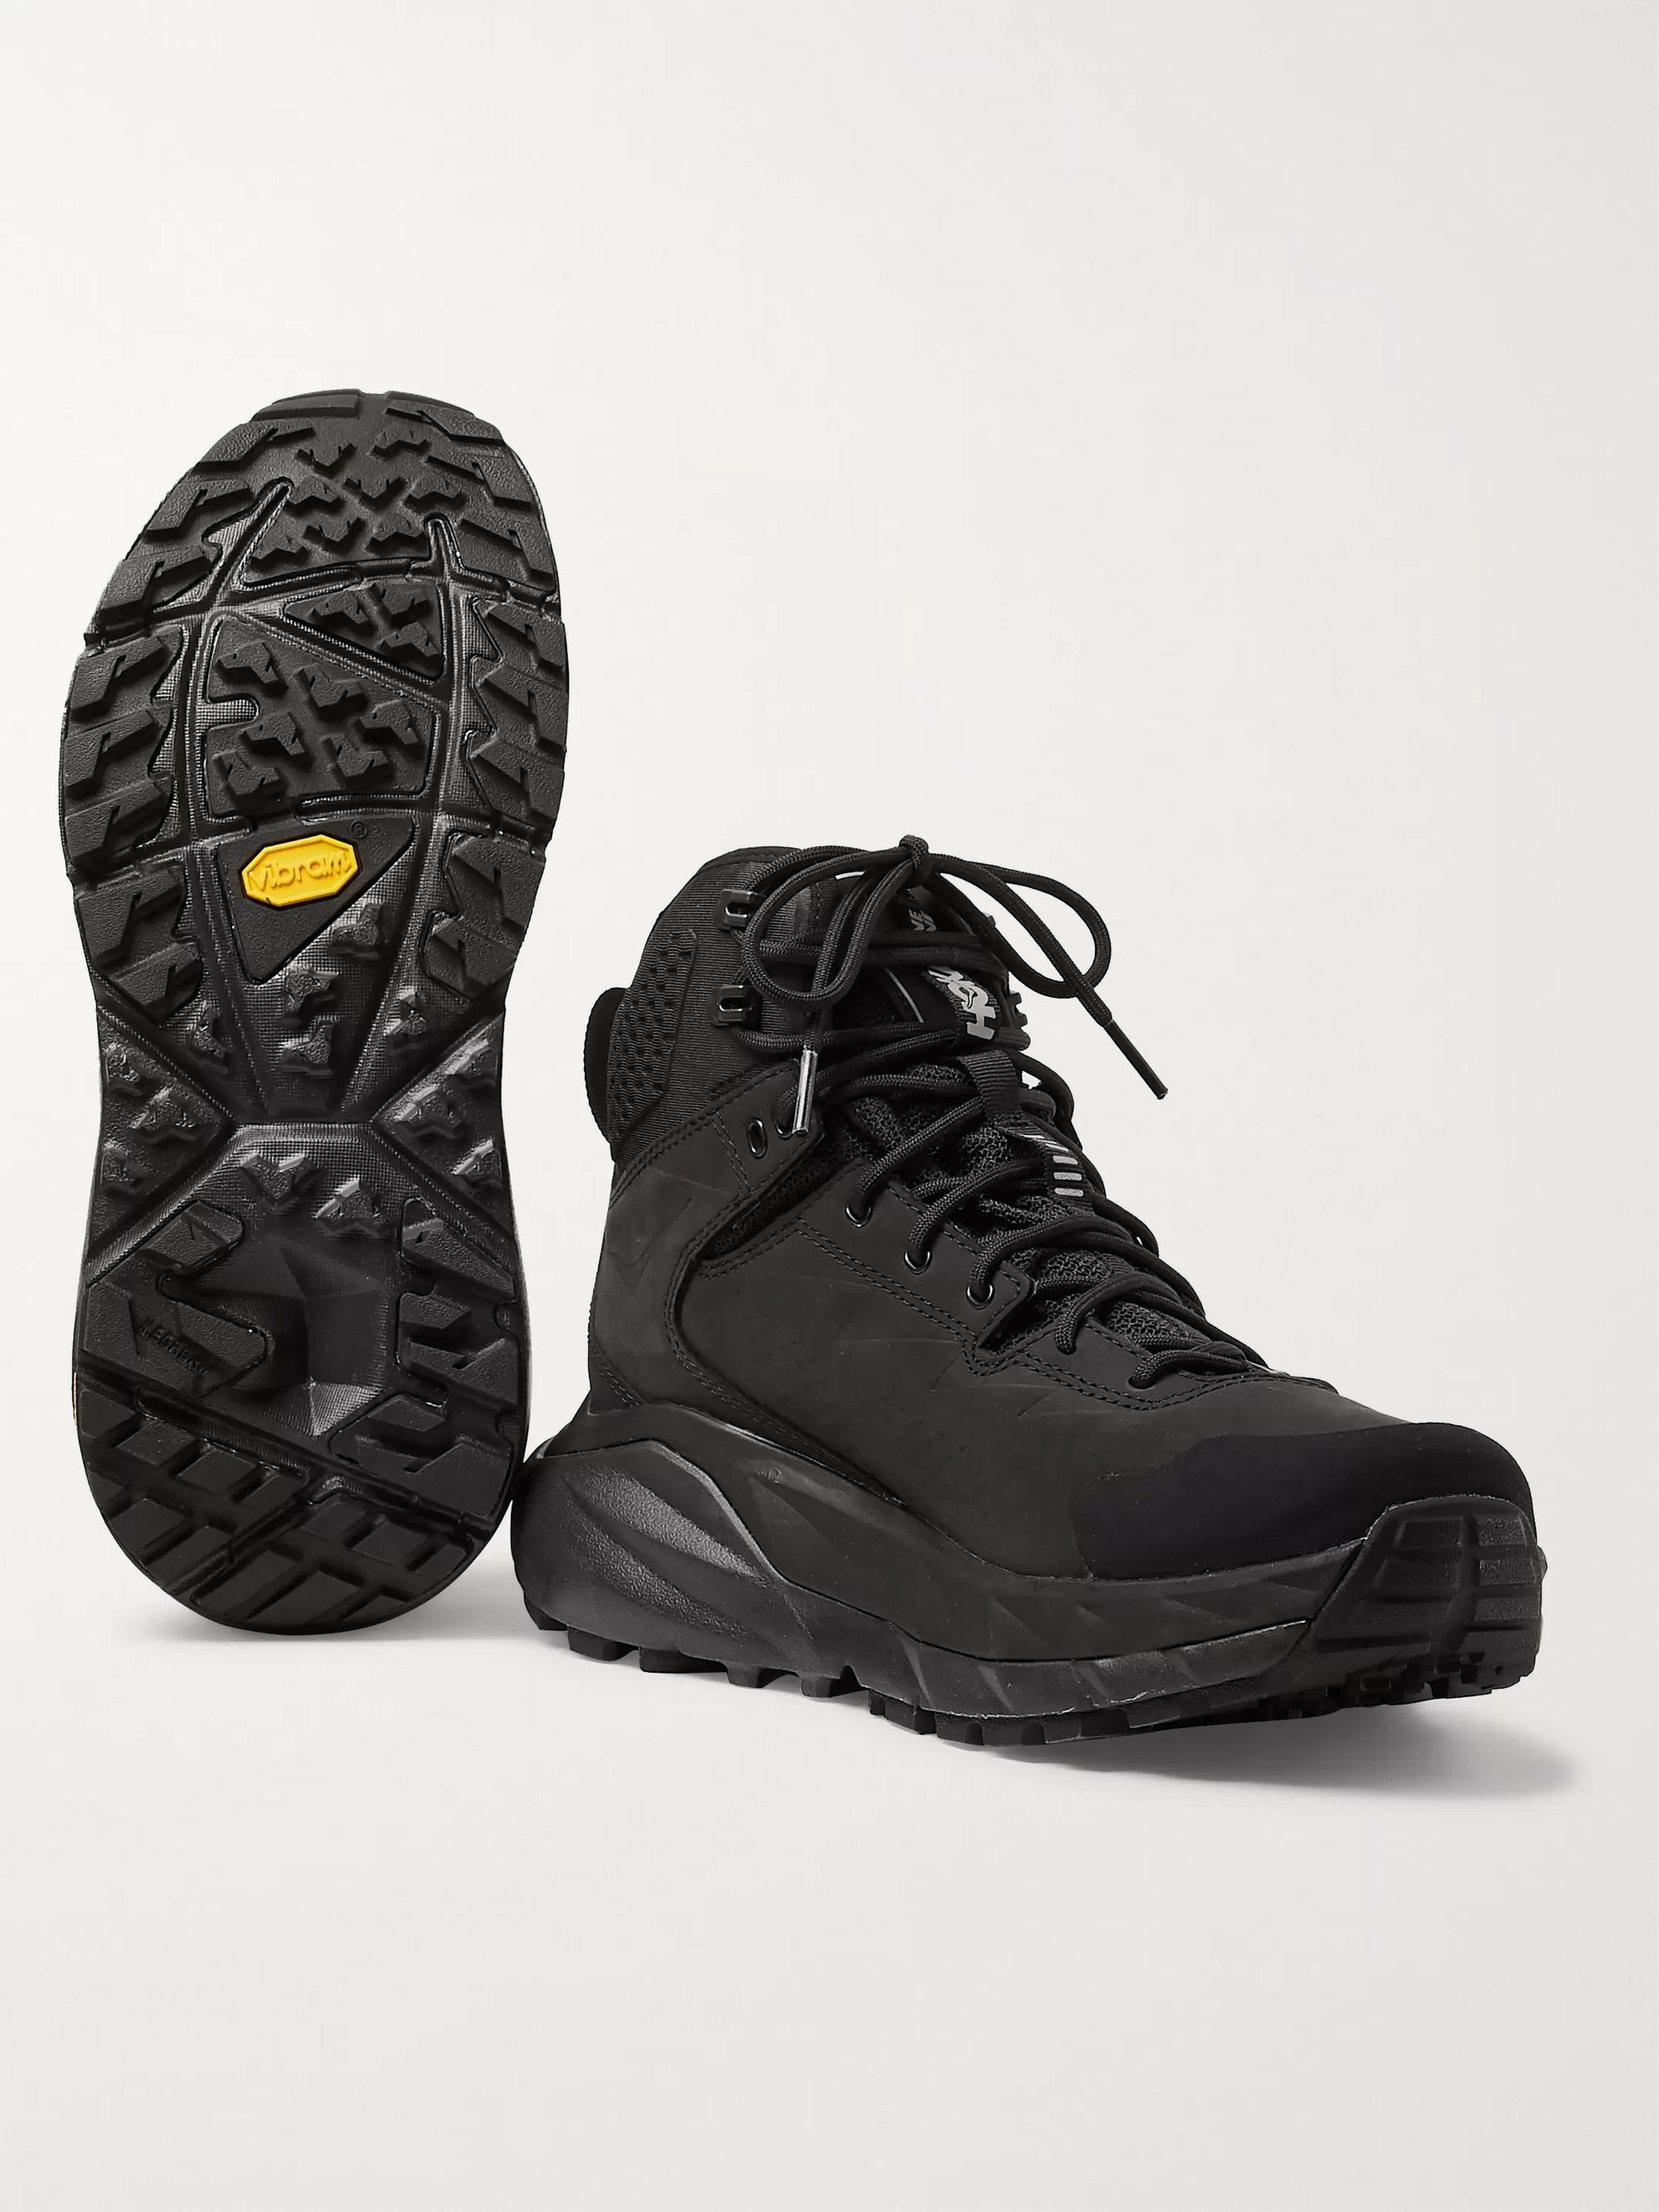 Hoka One One Kaha GORE-TEX and Leather Boots